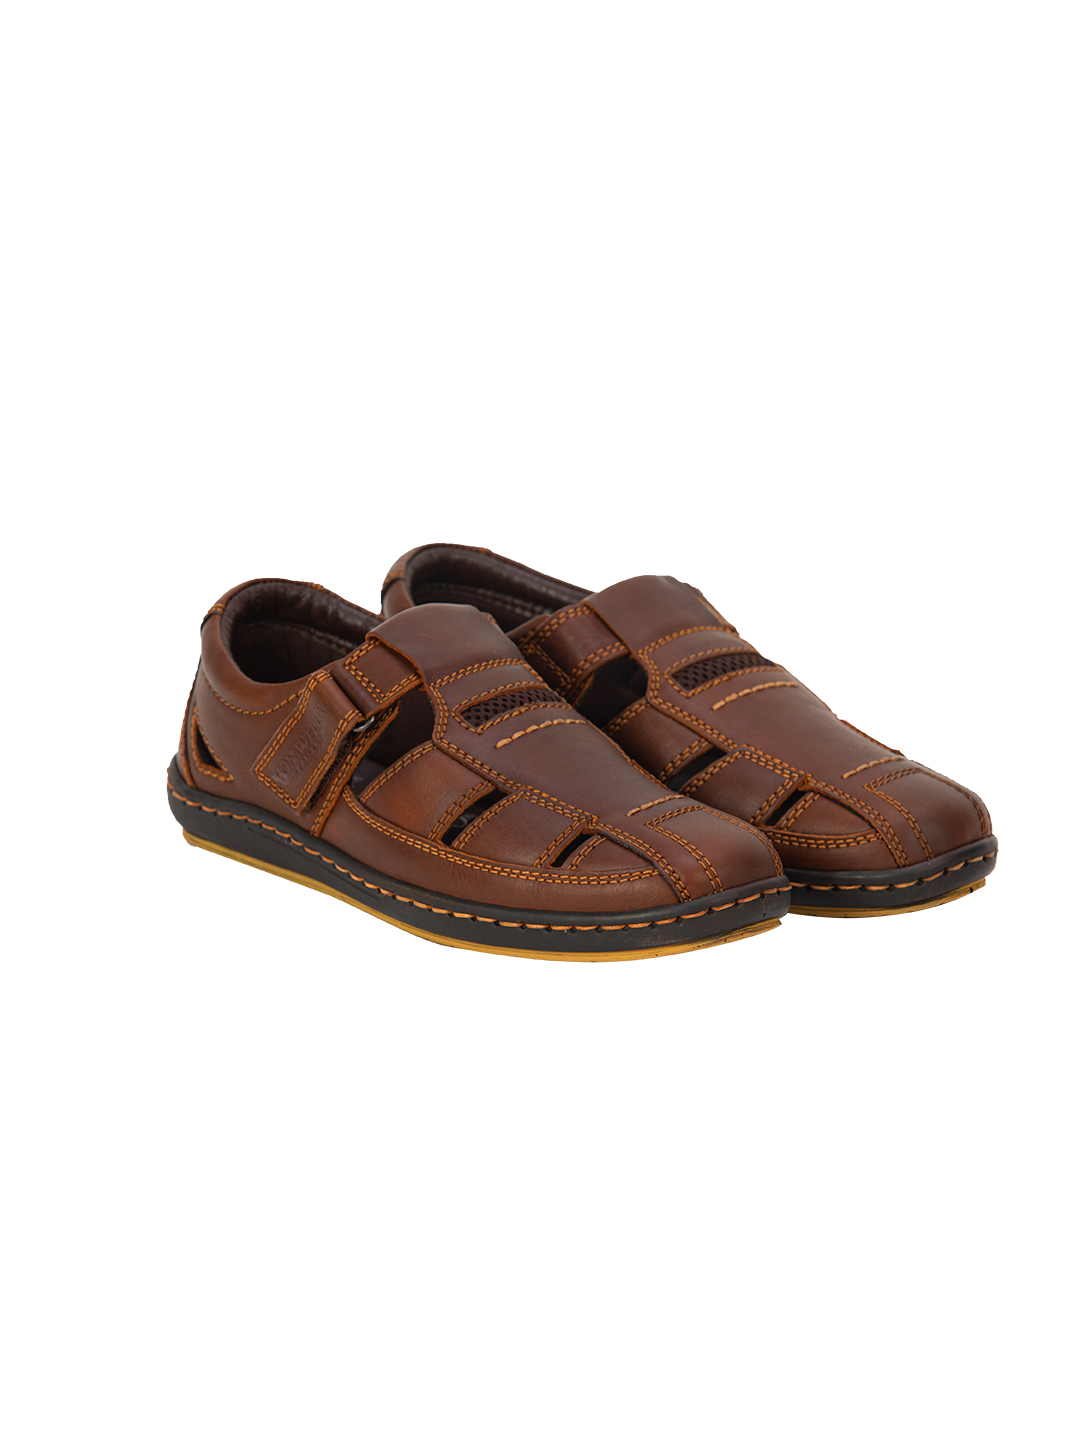 Buy Von Wellx Germany Comfort Brown Canter Sandals Online in Nashik